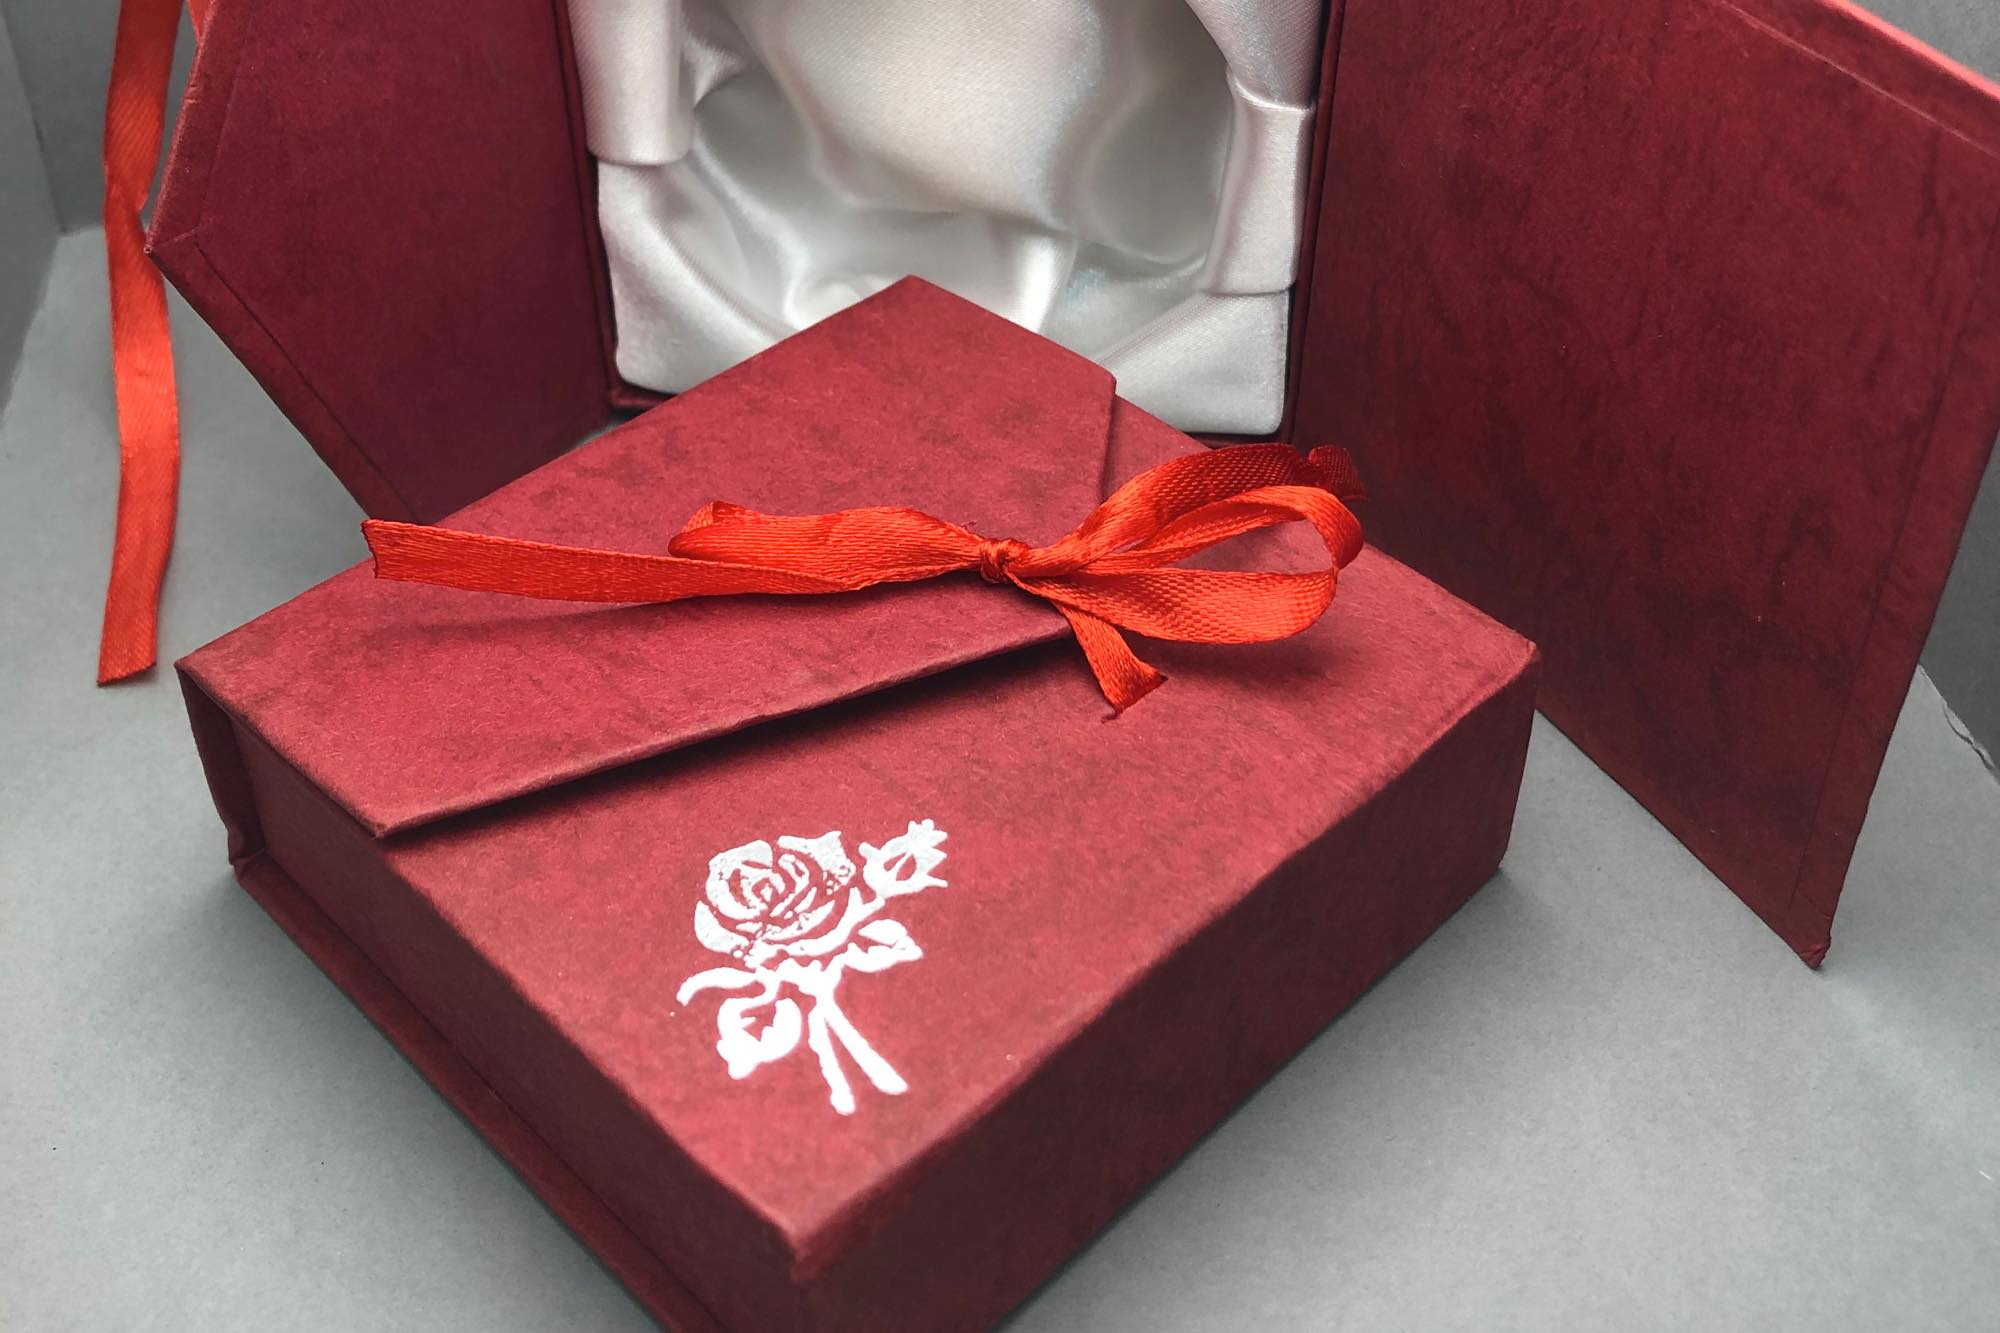 Medium Red Square Gift Box / 9x9x3cm